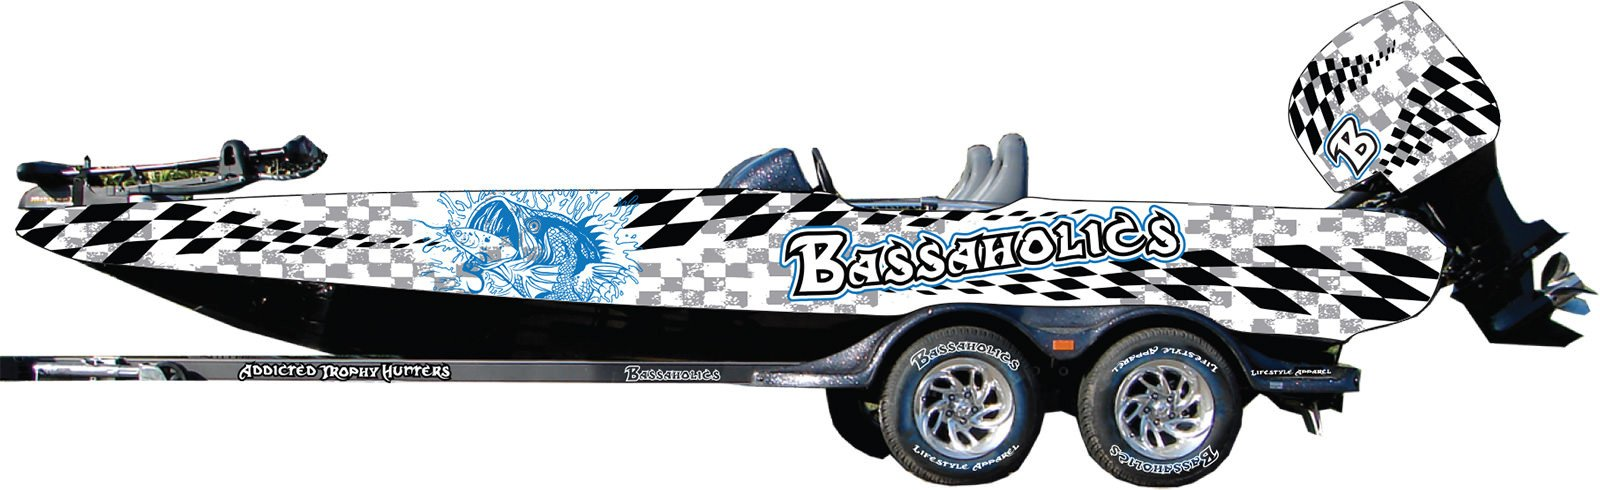 Boat Wrap Design Template Bass Boat Wraps